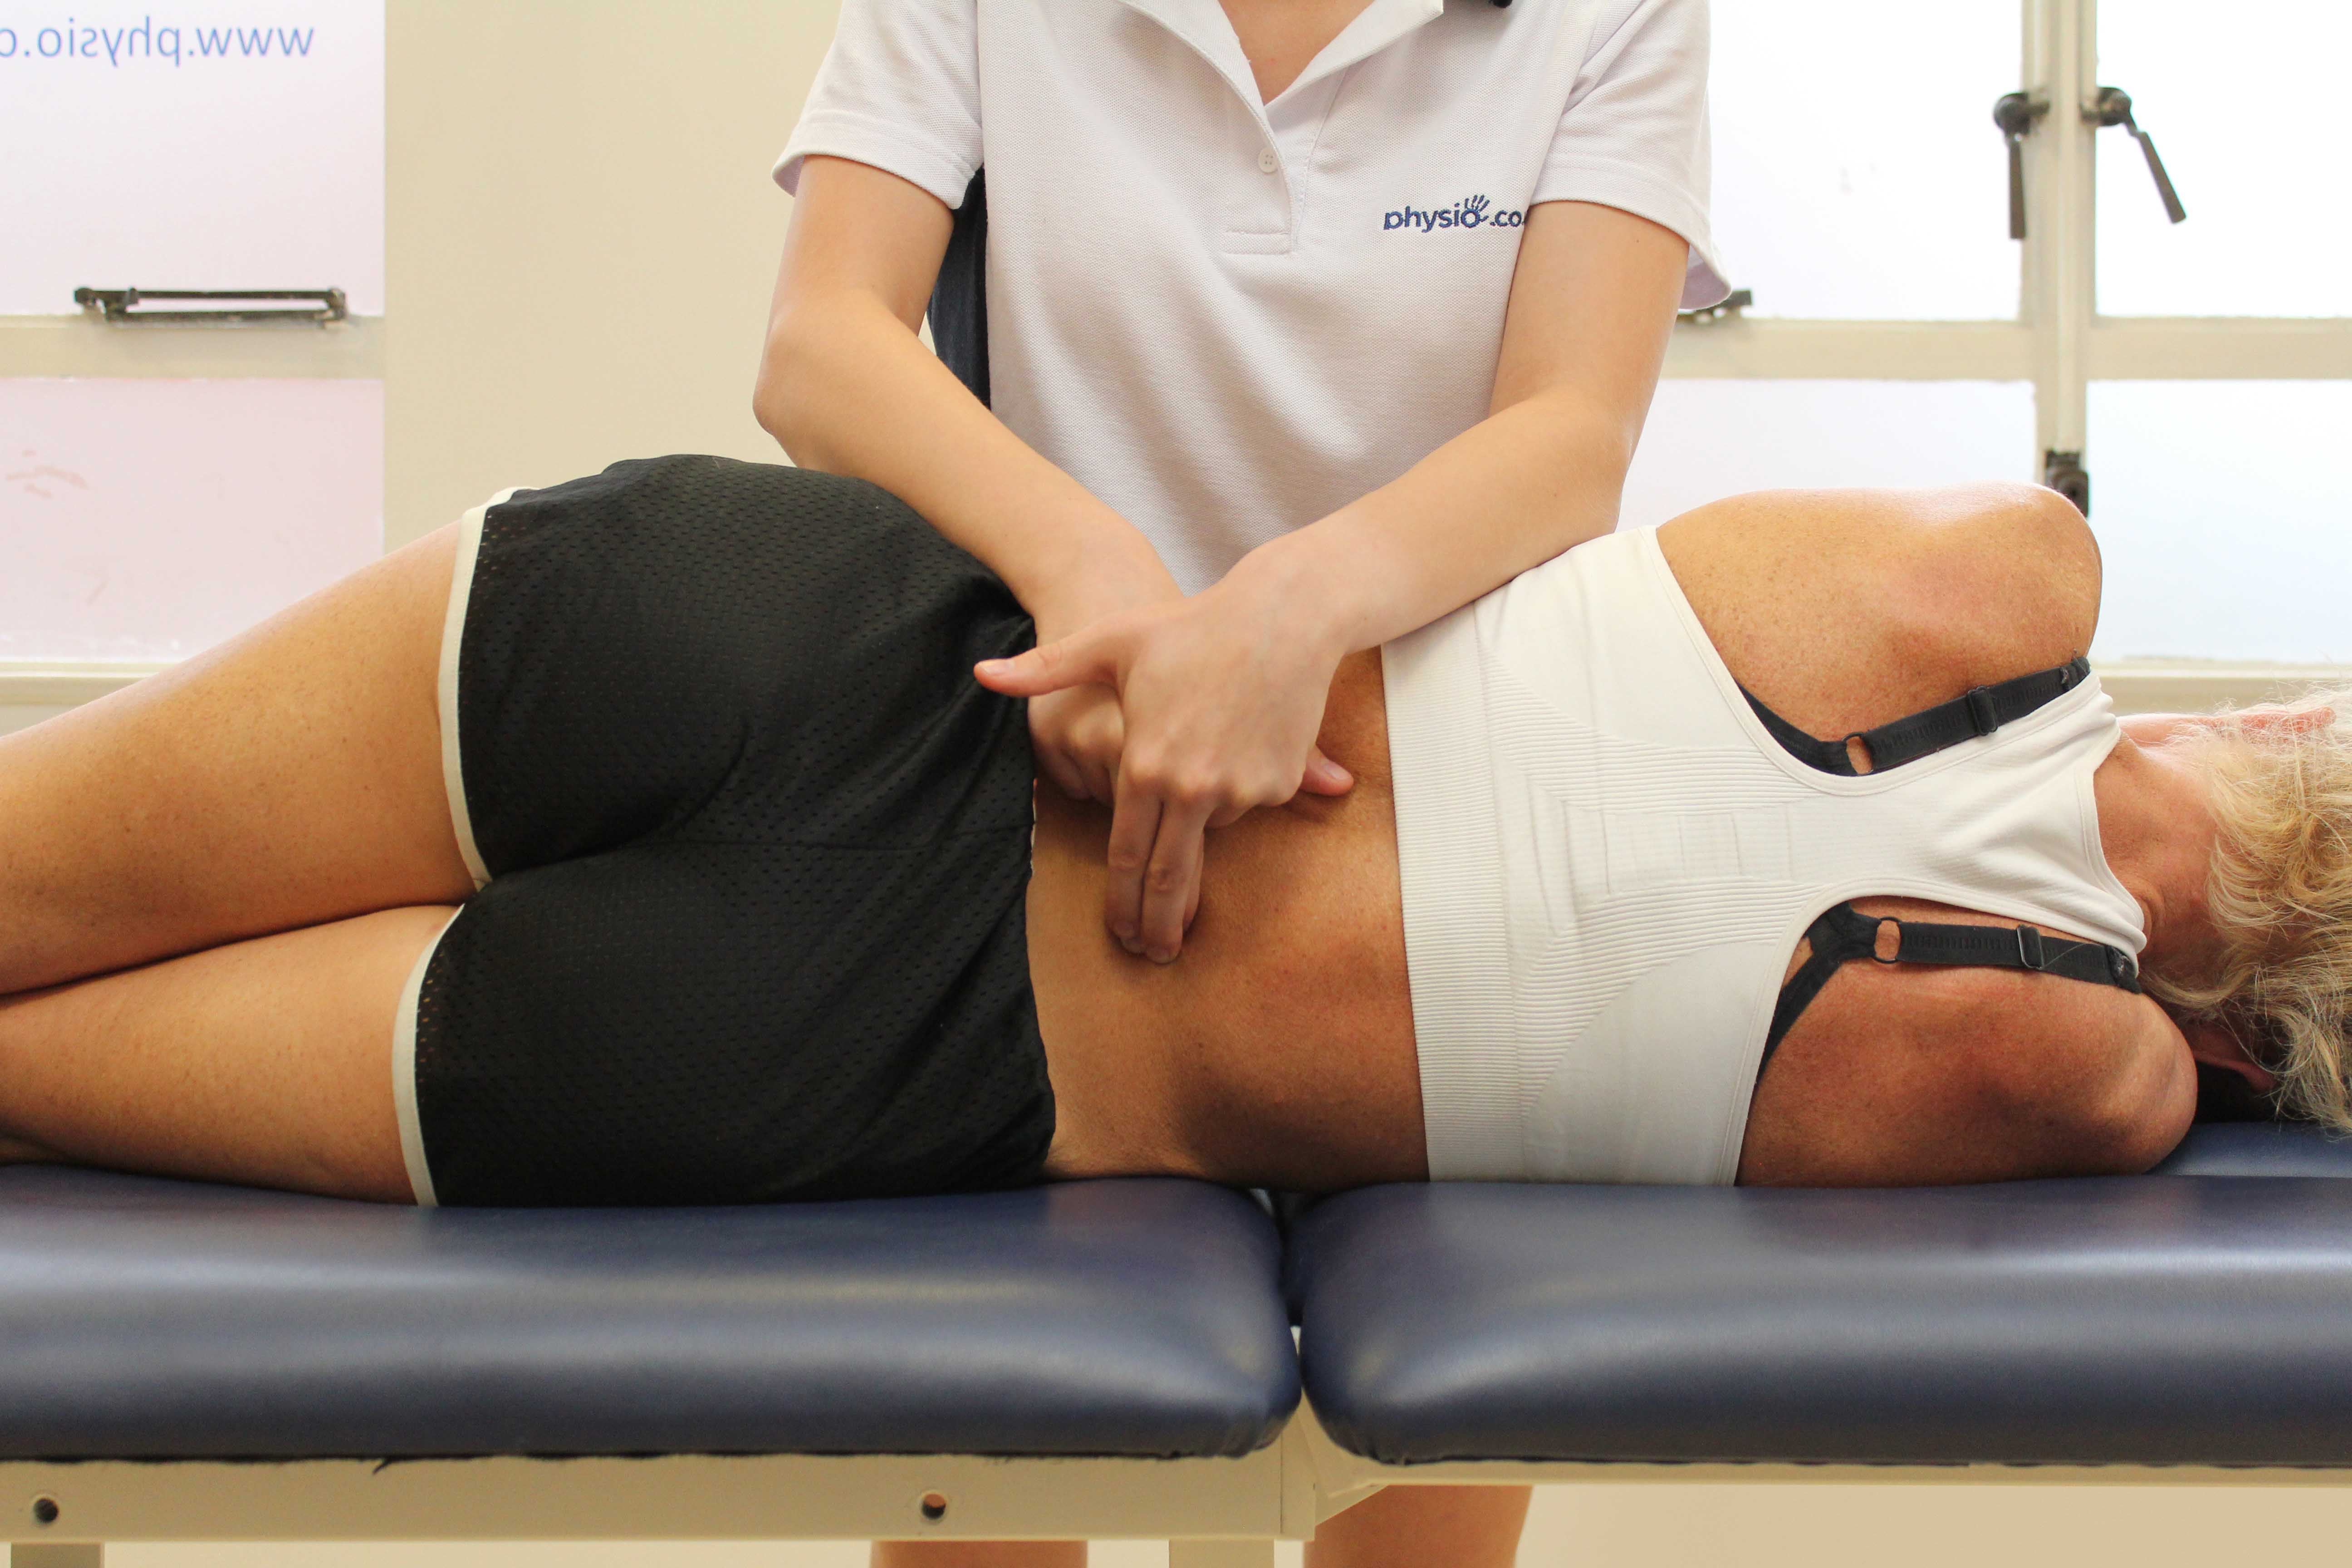 Mobilisations of the lumbar vertebrea by a physiotherapist